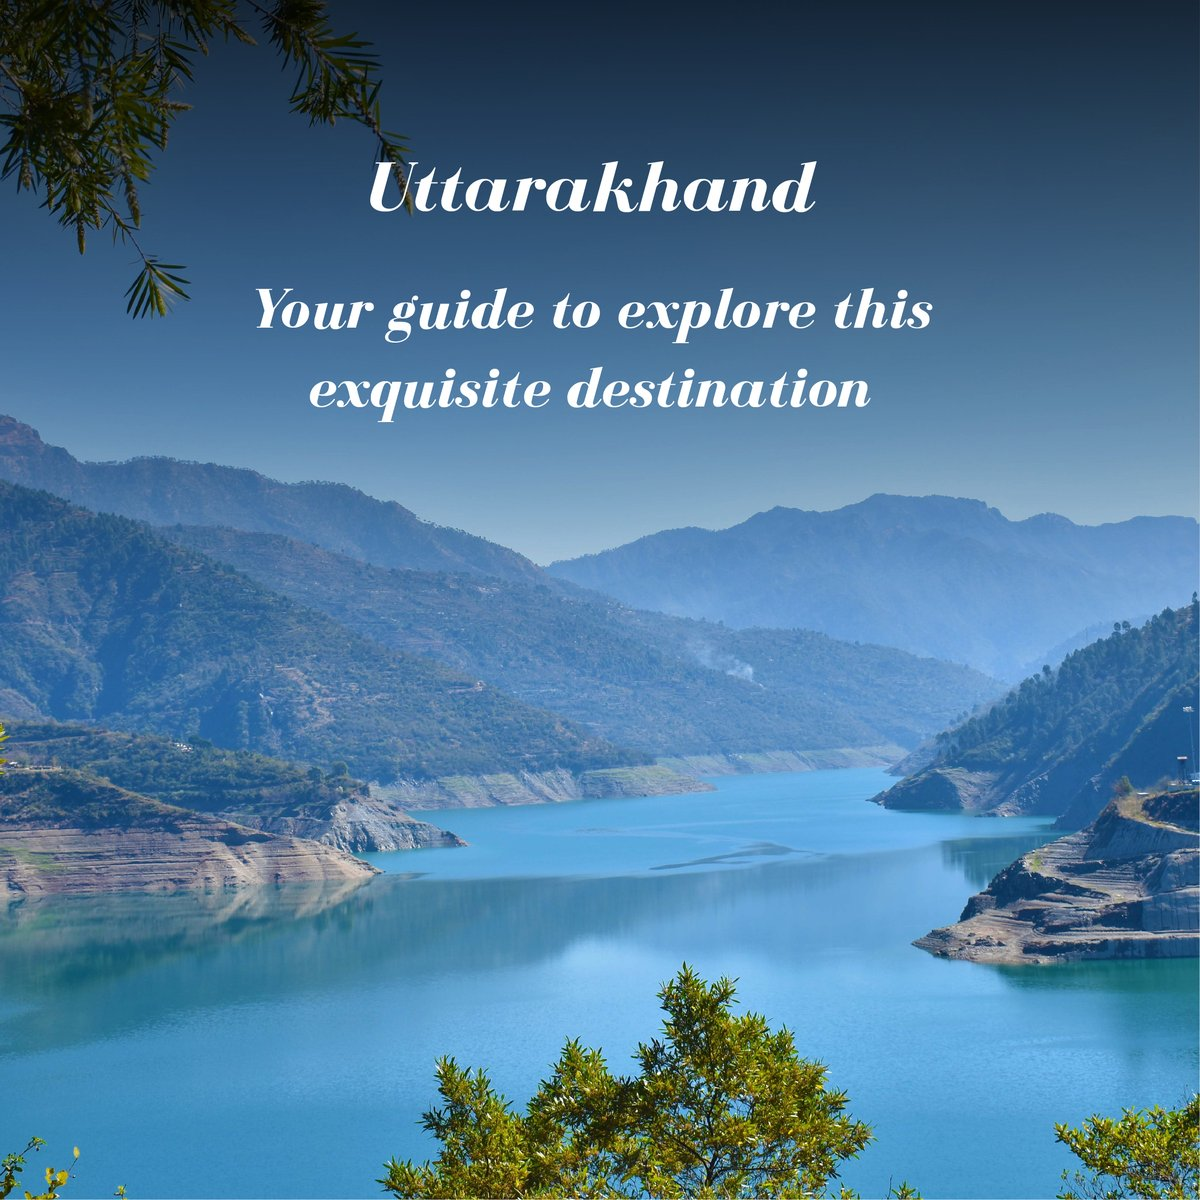 In a recent big move, the state of Uttarakhand has lifted all travel restrictions with regard to special permits, COVID certificates, and e-permits for inter-state travelers. Plan your travel with Hi Tours now!  https://t.co/t7y3fLsFbb   #uttarakhand #hillsofindia  #hitours https://t.co/GrY2o8BqH2